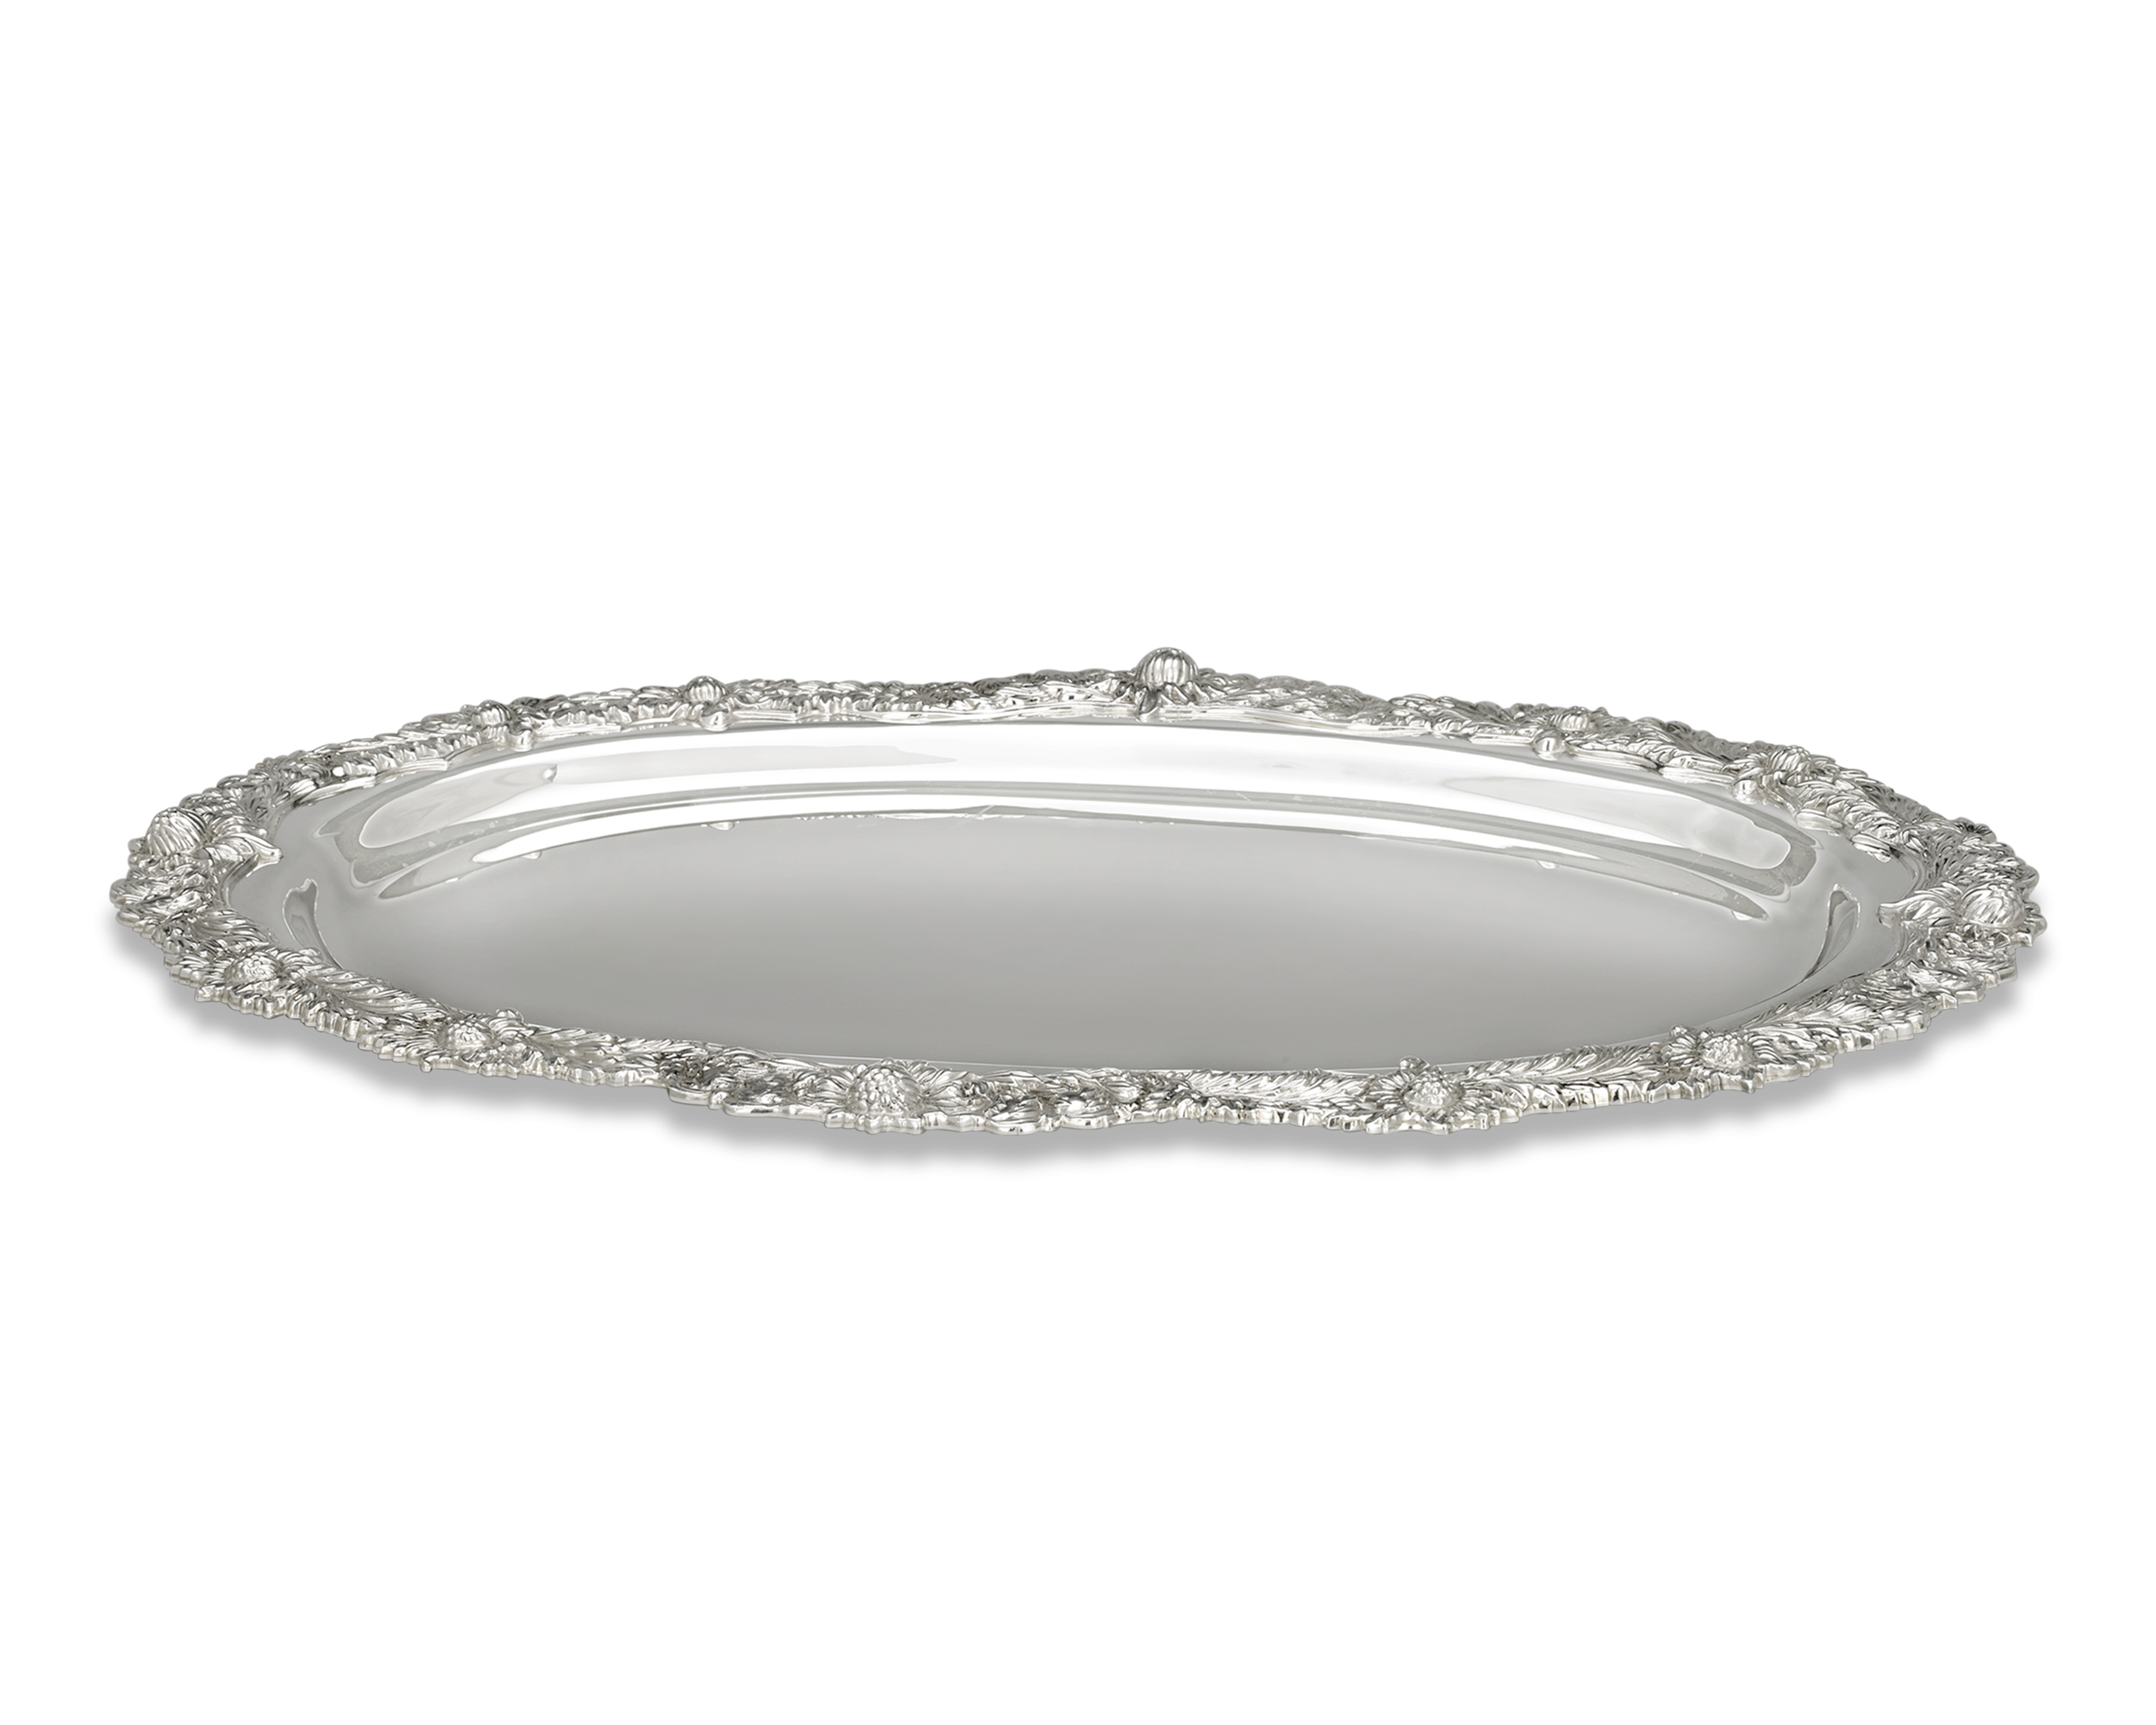 Tiffany & Co. Chrysanthemum Silver Serving Tray.